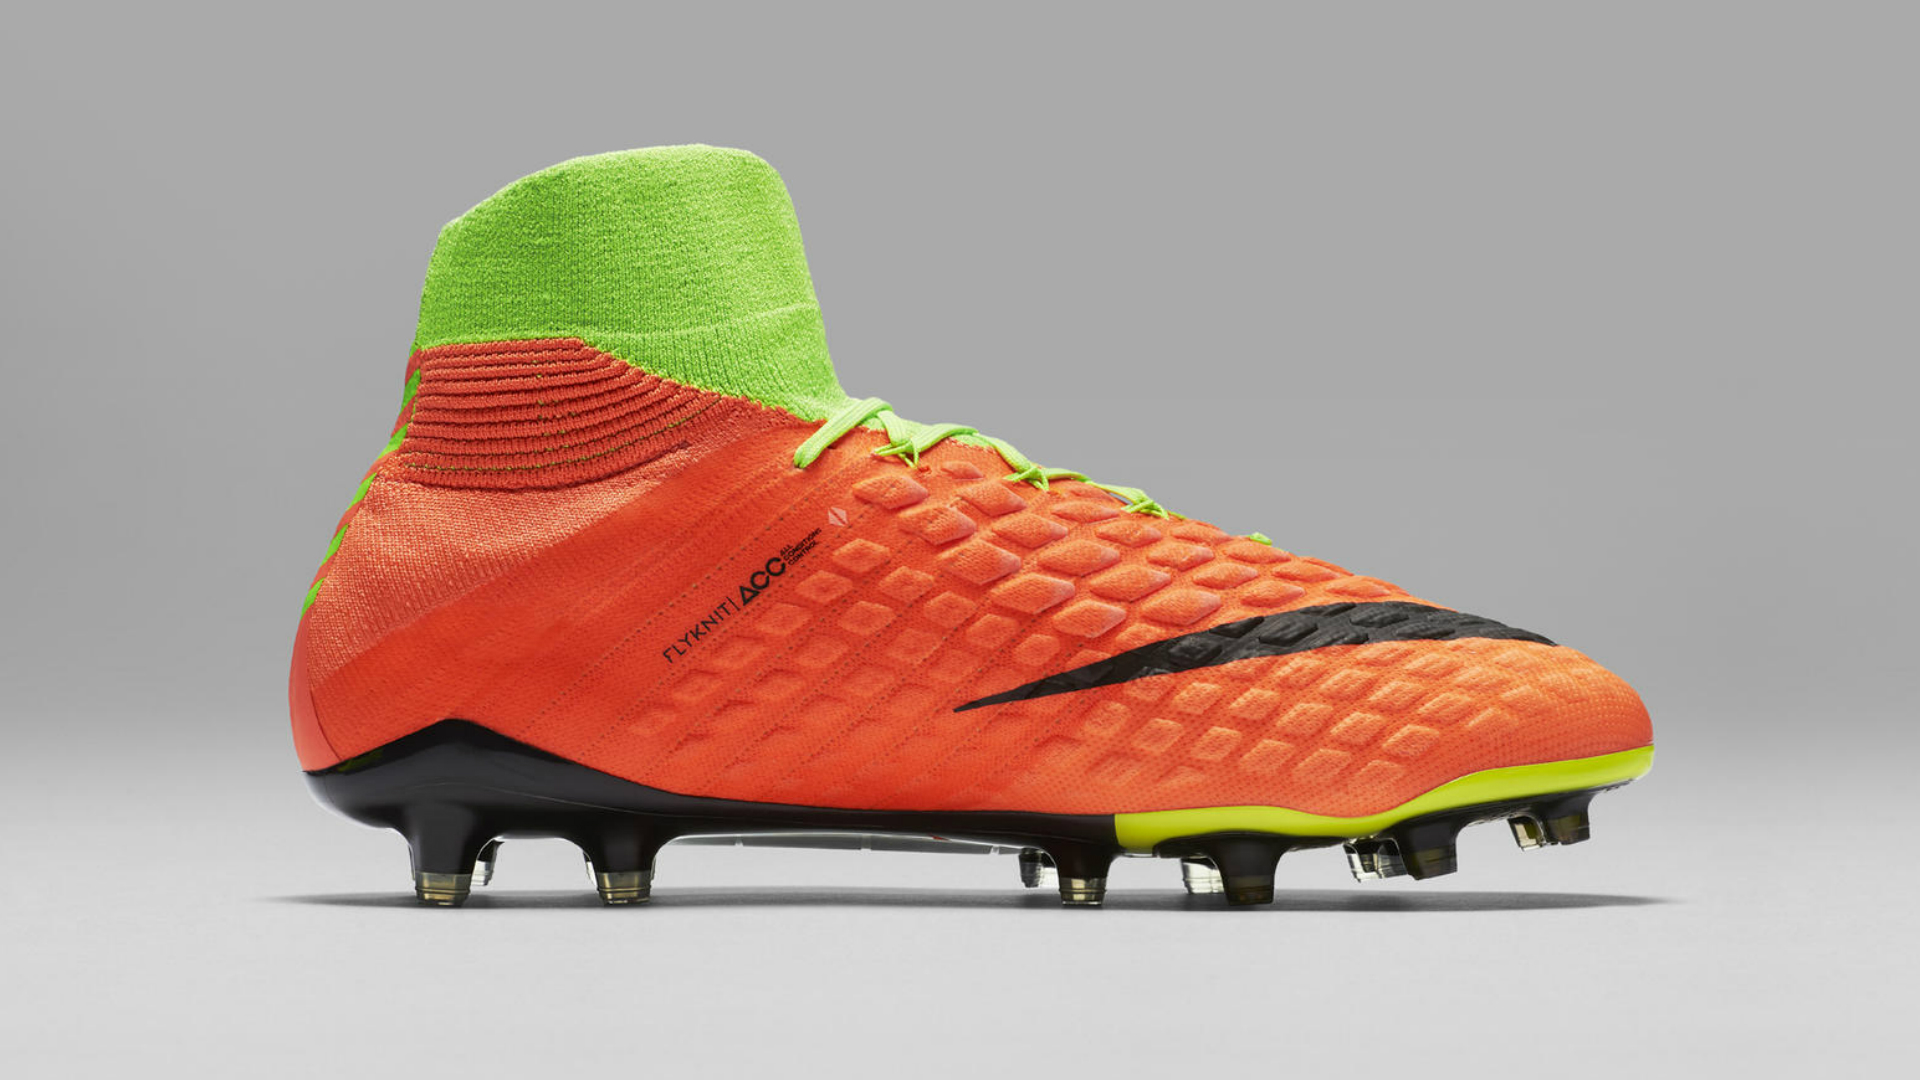 detailed pictures 9f7b3 0f156 Nike's Hypervenom III to inspire new strikers   Goal.com